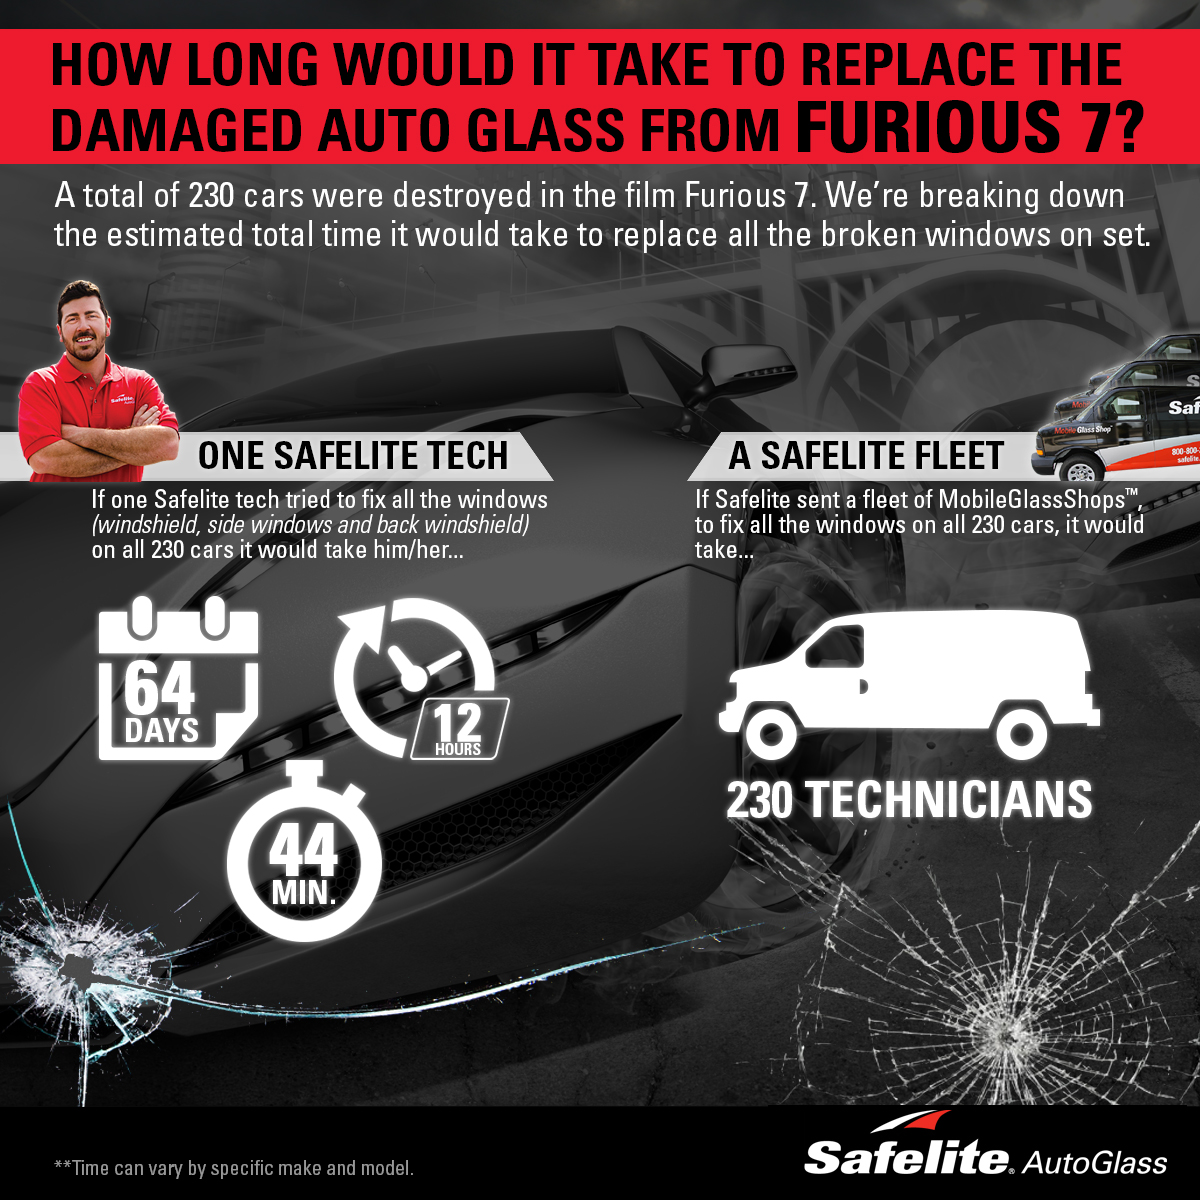 Can you imagine how long it would take to replace all 230 cars from the new movie Furious 7? Safelite calcuated the time it would take to replace all broken windows on set.